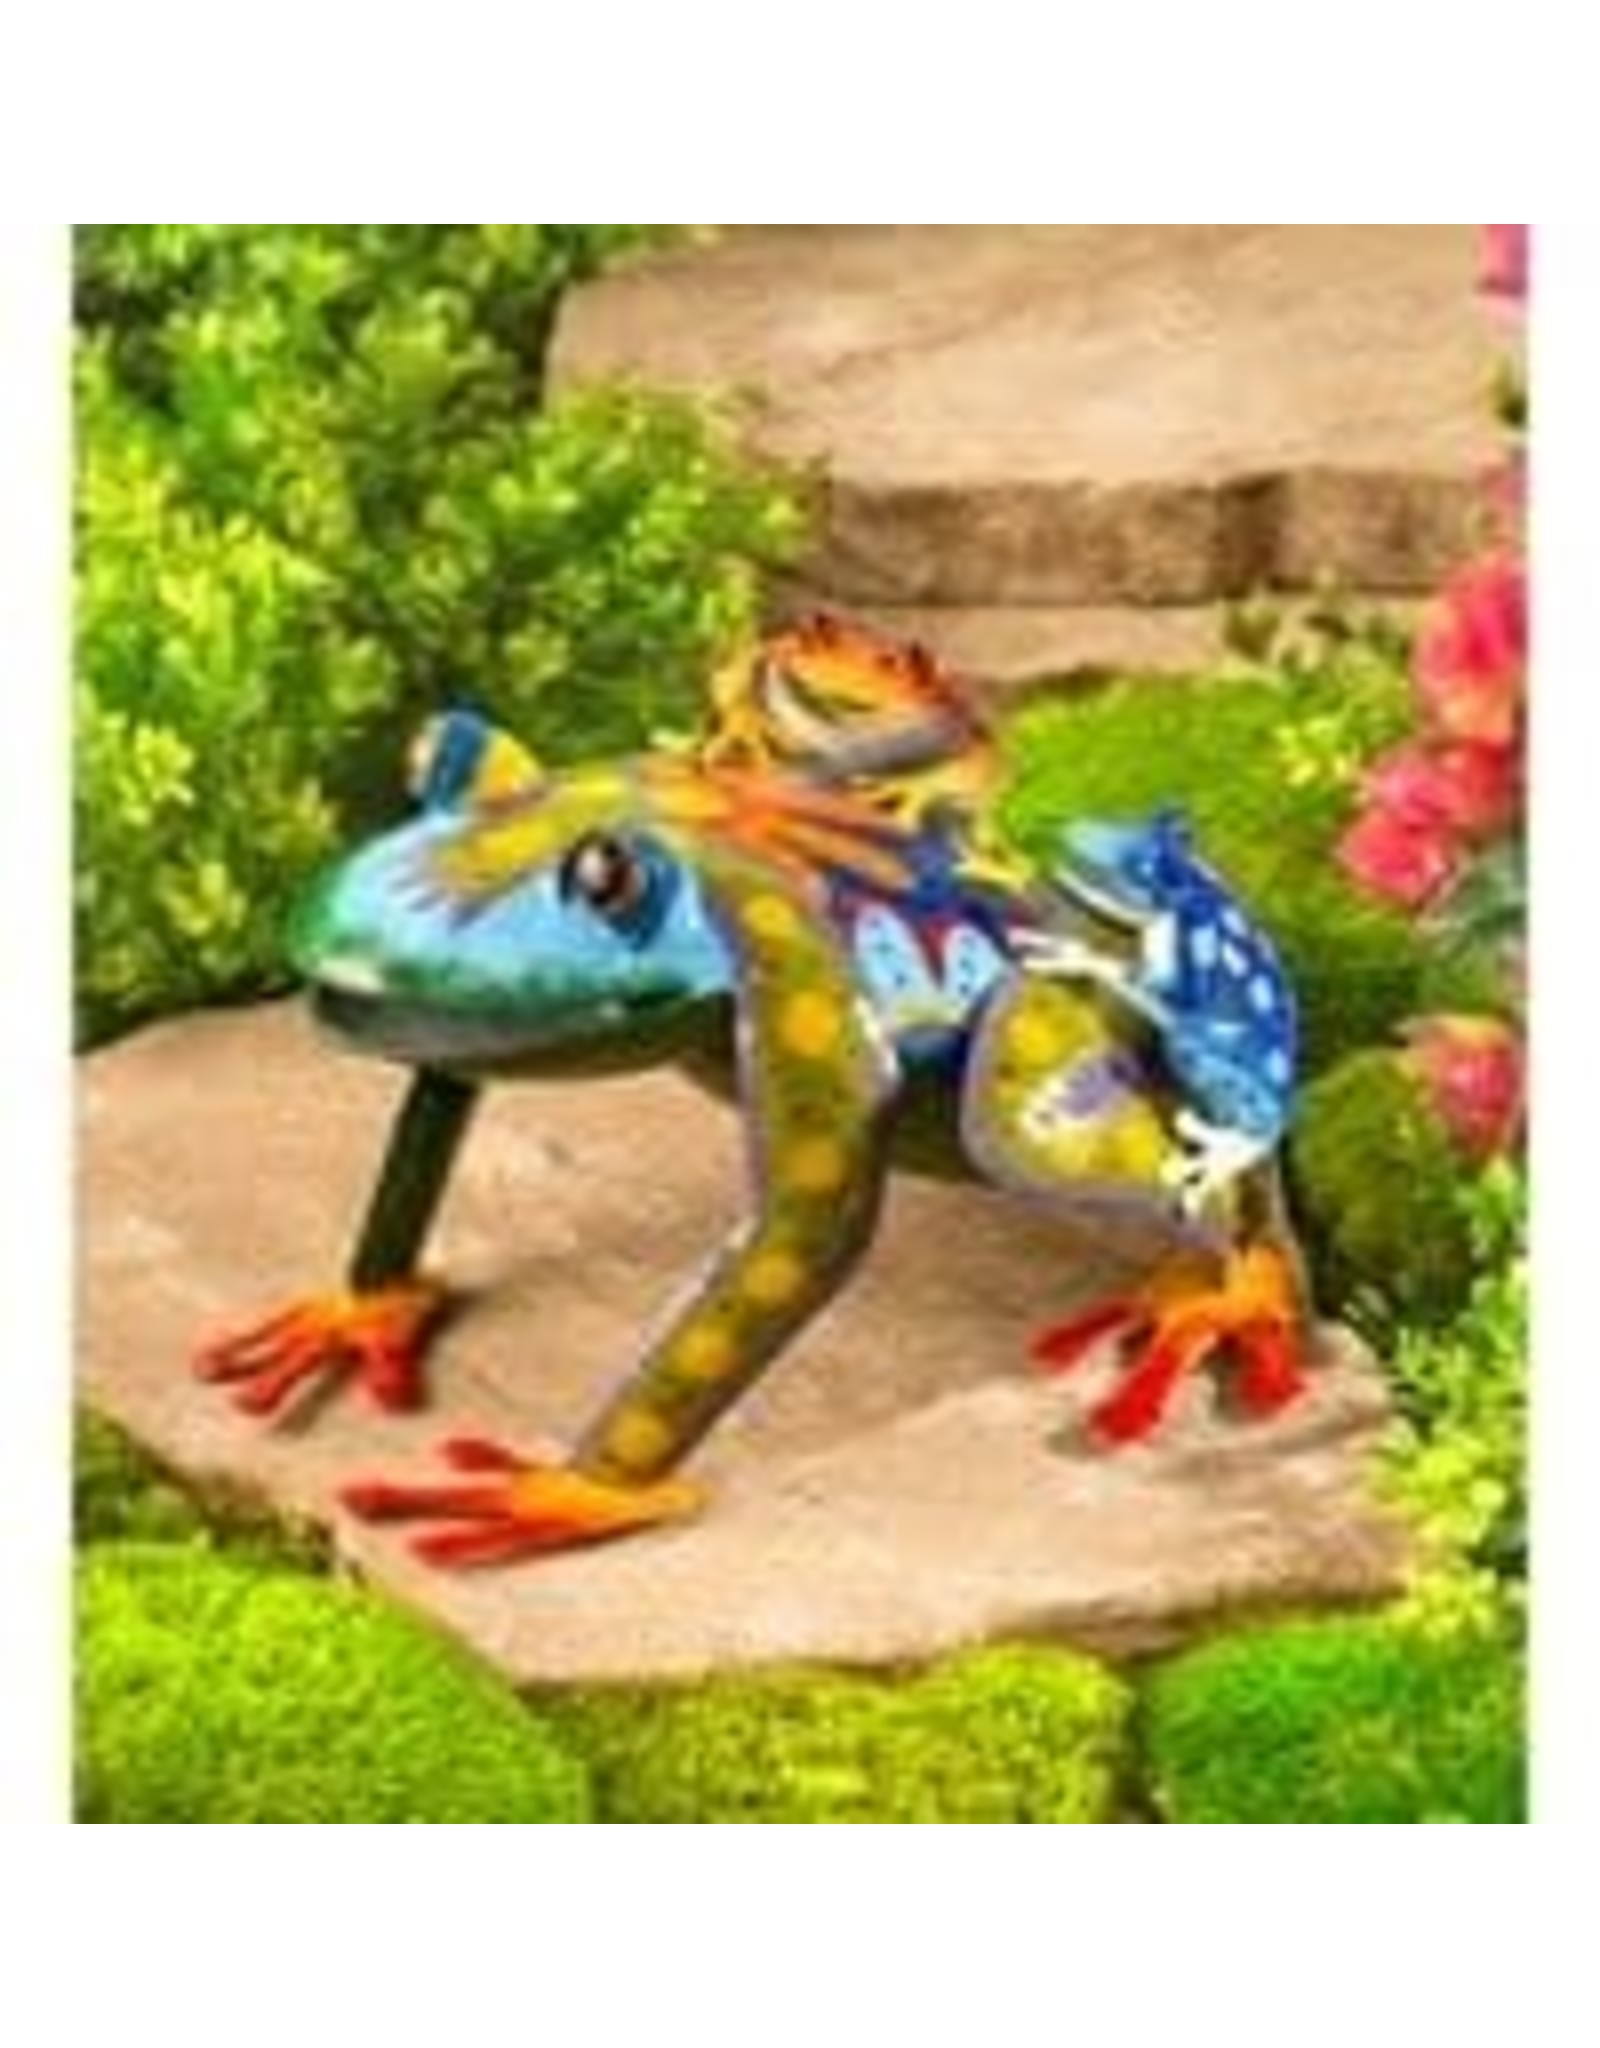 Evergreen EE3292 Metal Mama and Baby Frogs Sculpture